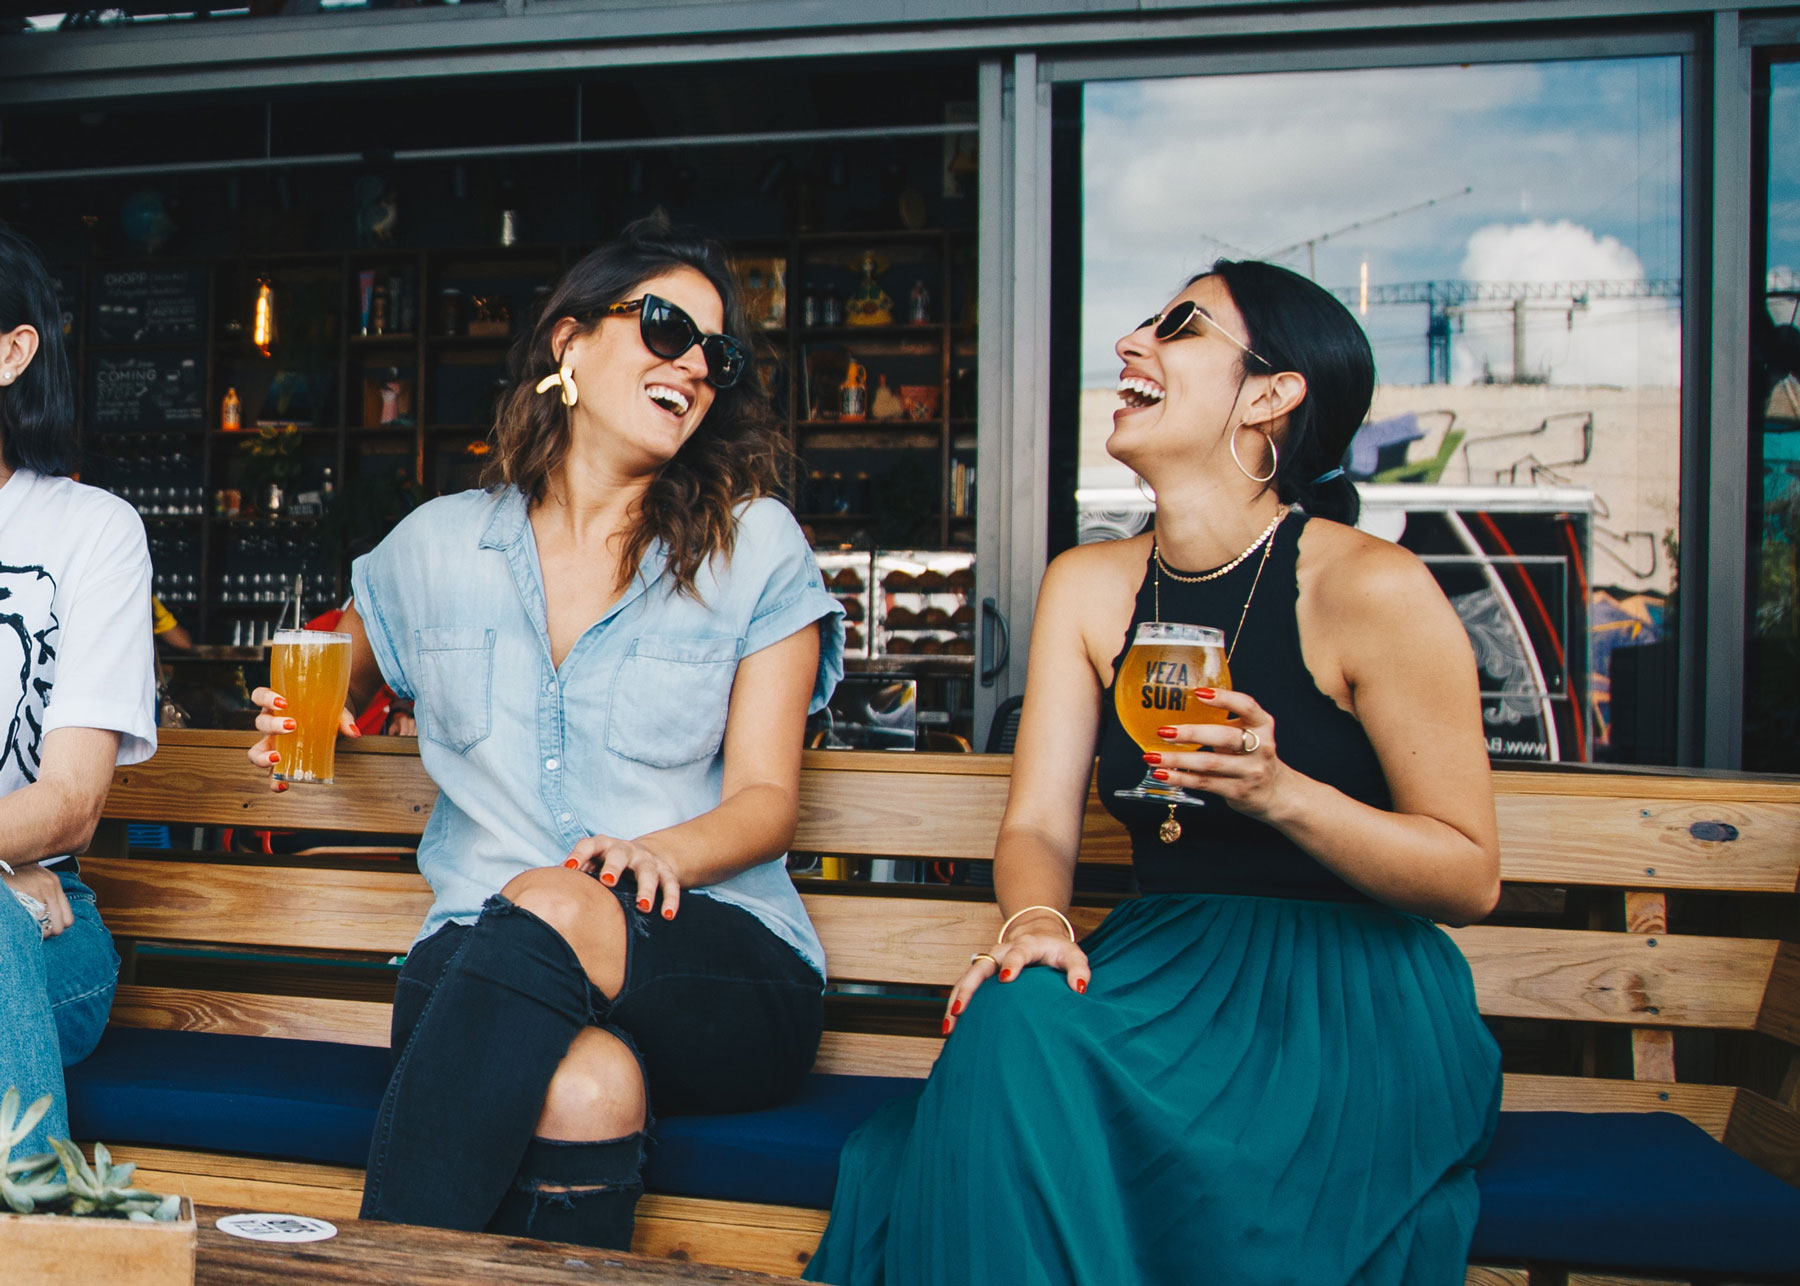 Women friends laughing, drinking craft beer and relaxing at outdoor pub